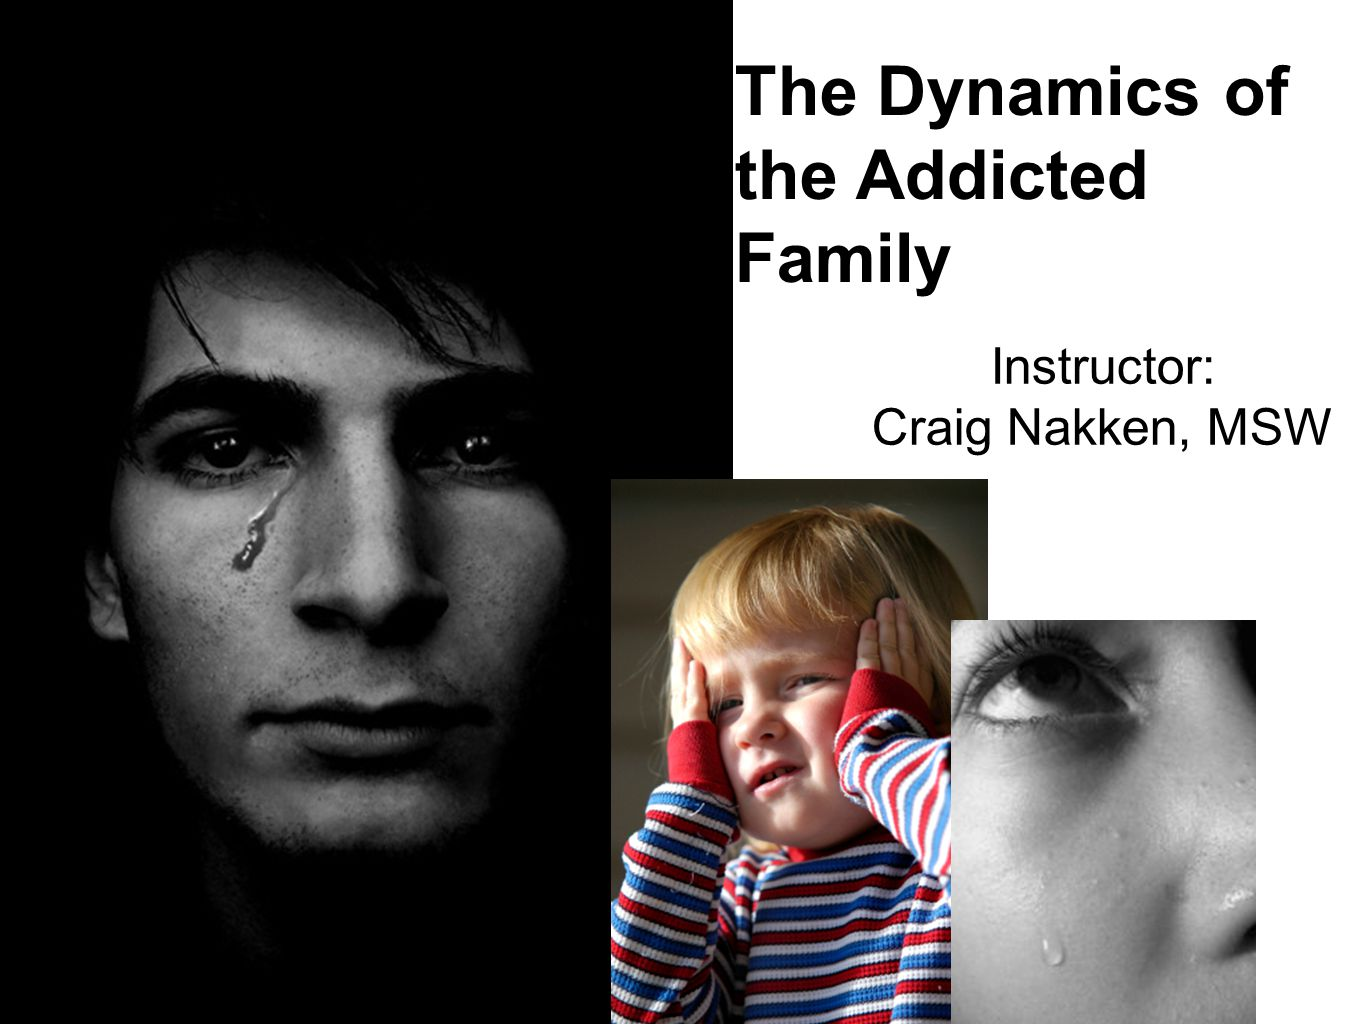 The Dynamics of the Addicted Family Instructor: Craig Nakken, MSW